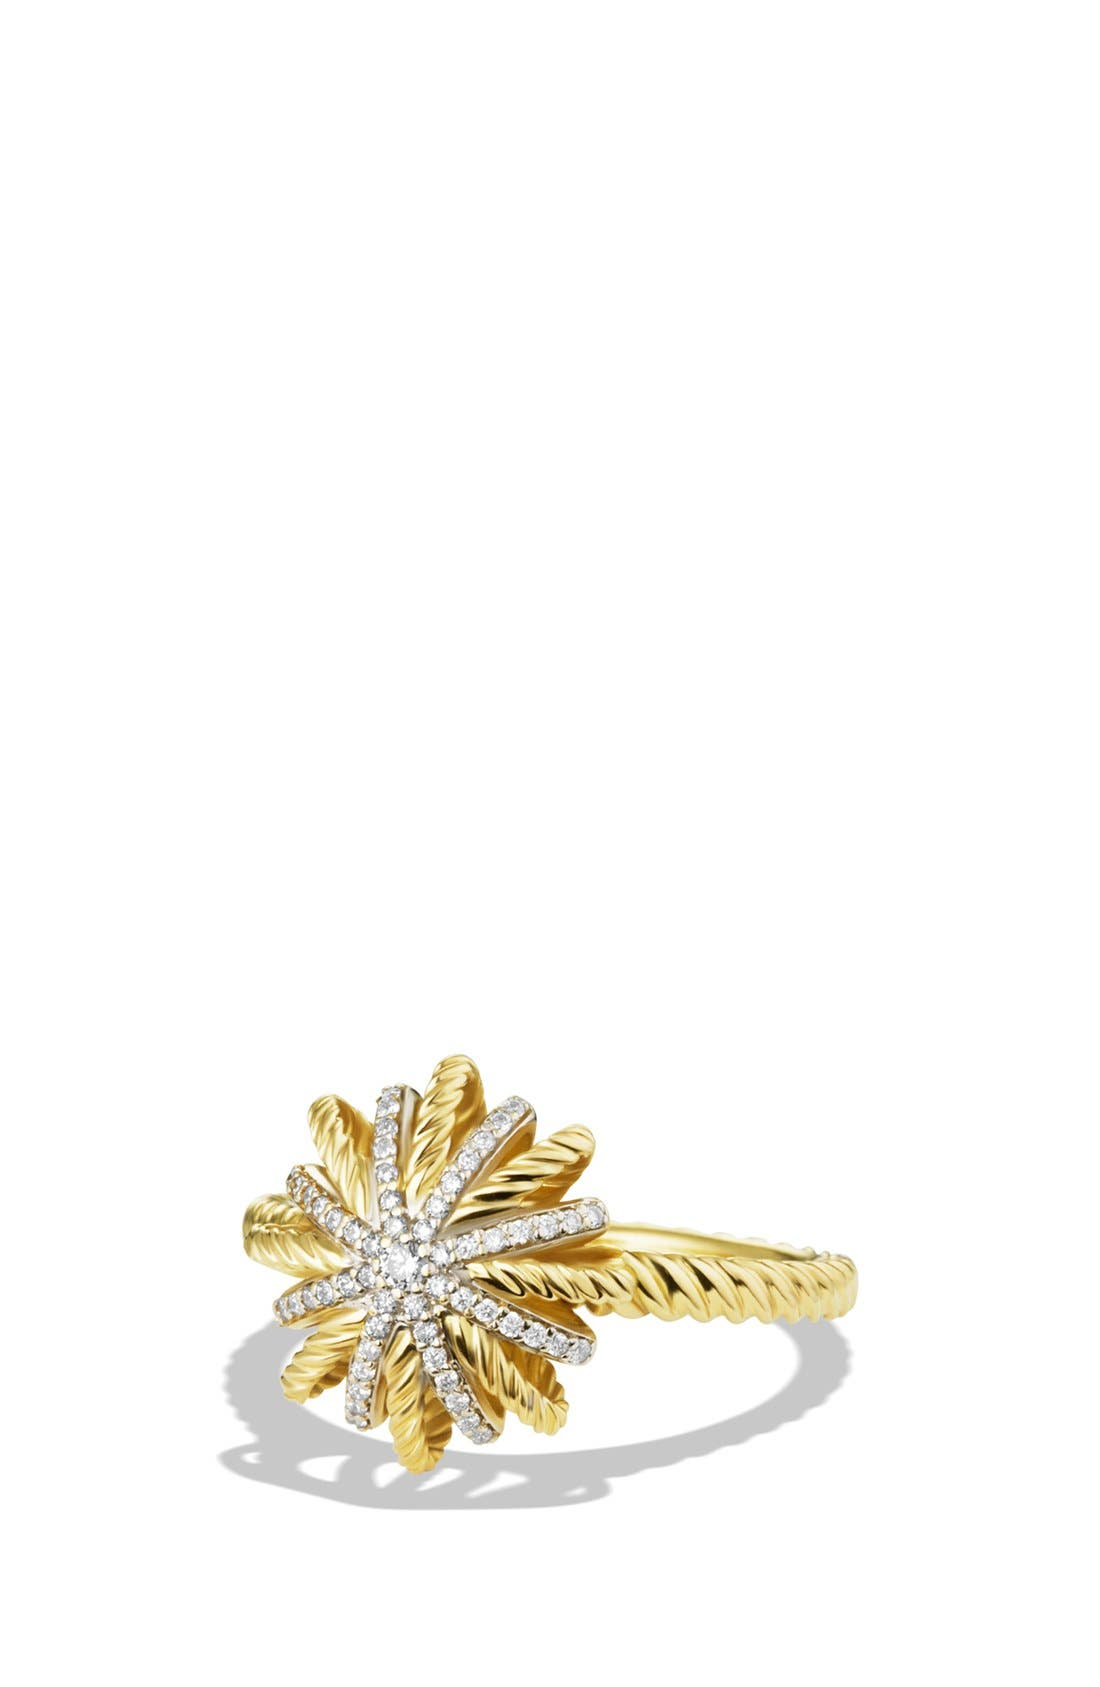 Alternate Image 1 Selected - David Yurman 'Starburst' Ring with Diamonds in Gold